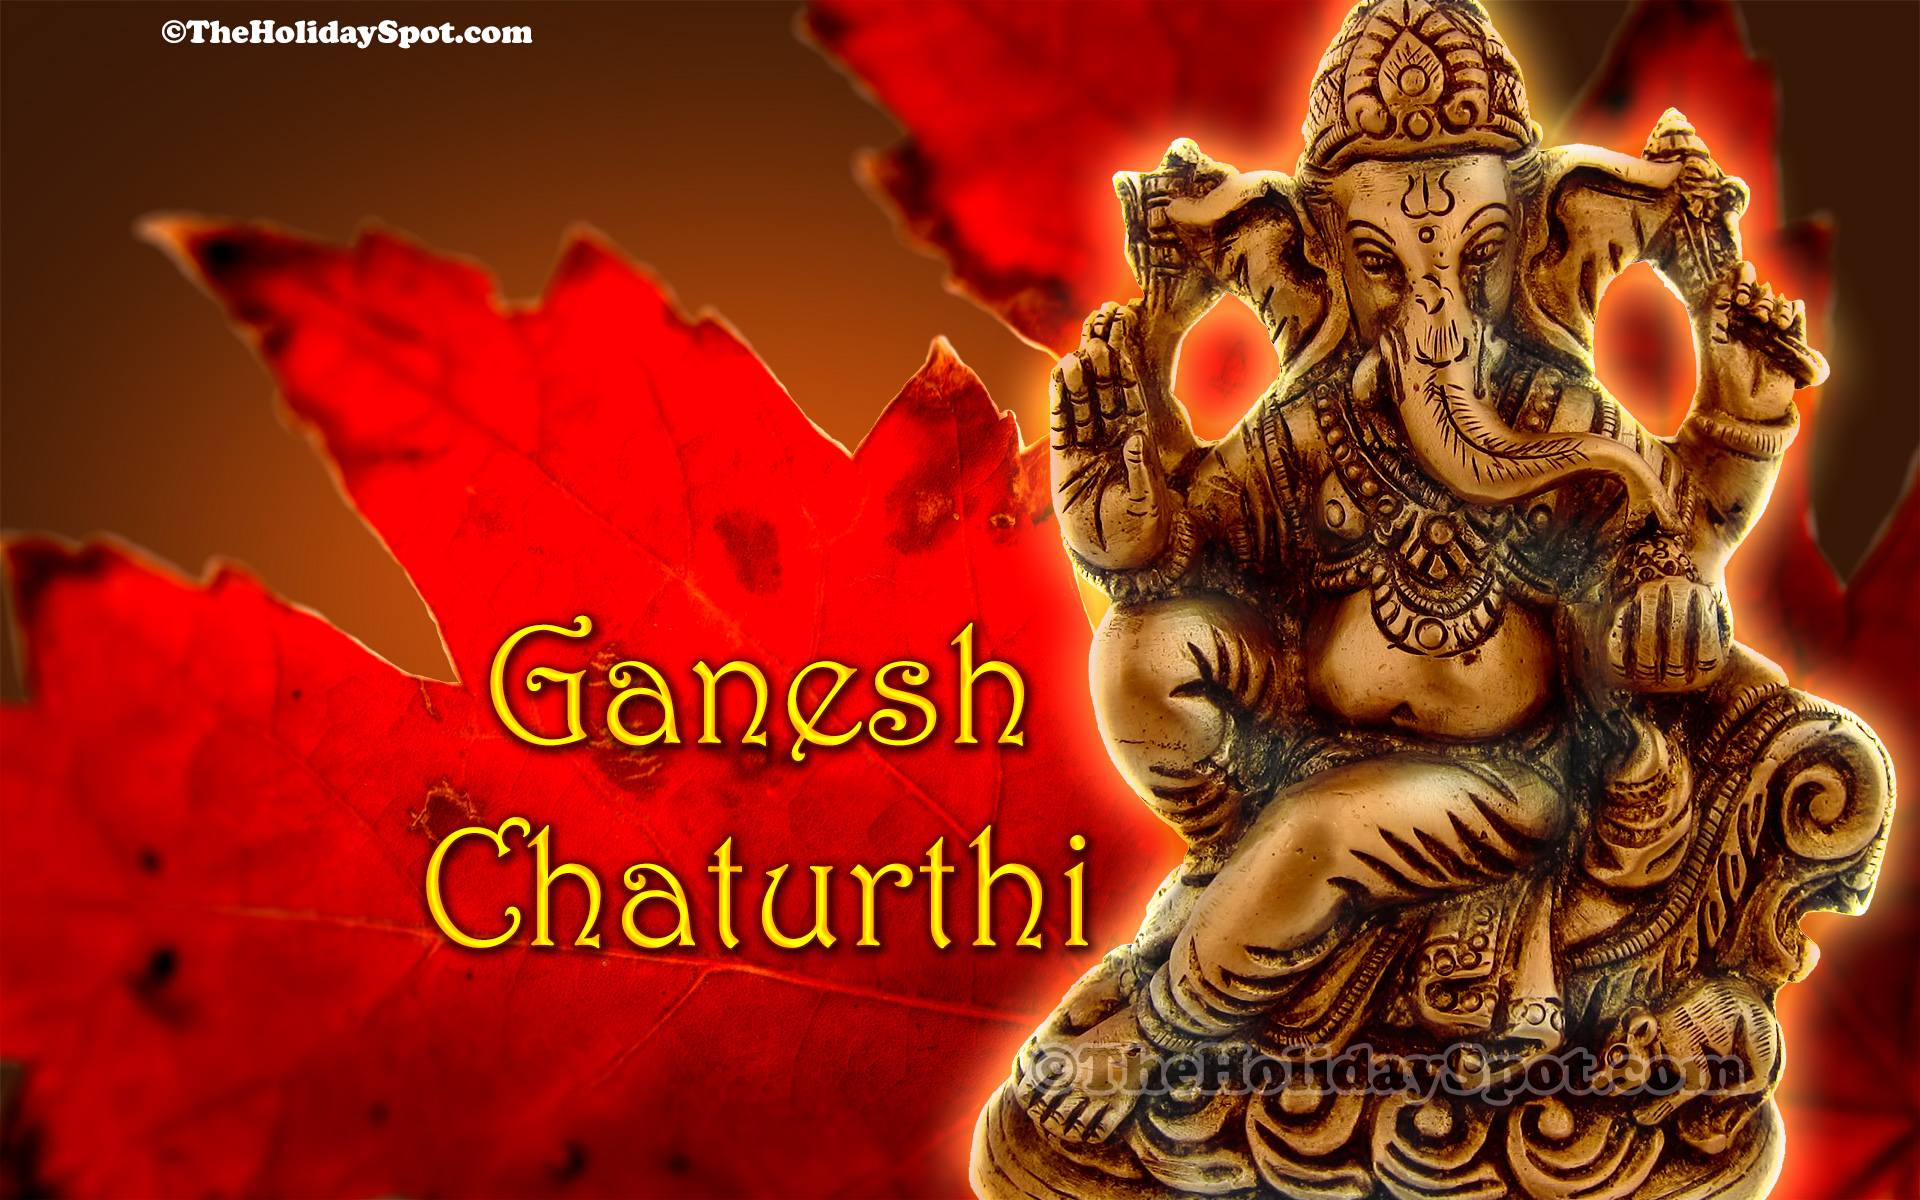 ganesh chaturthi wallpapers | hd lord ganesha wallpapers